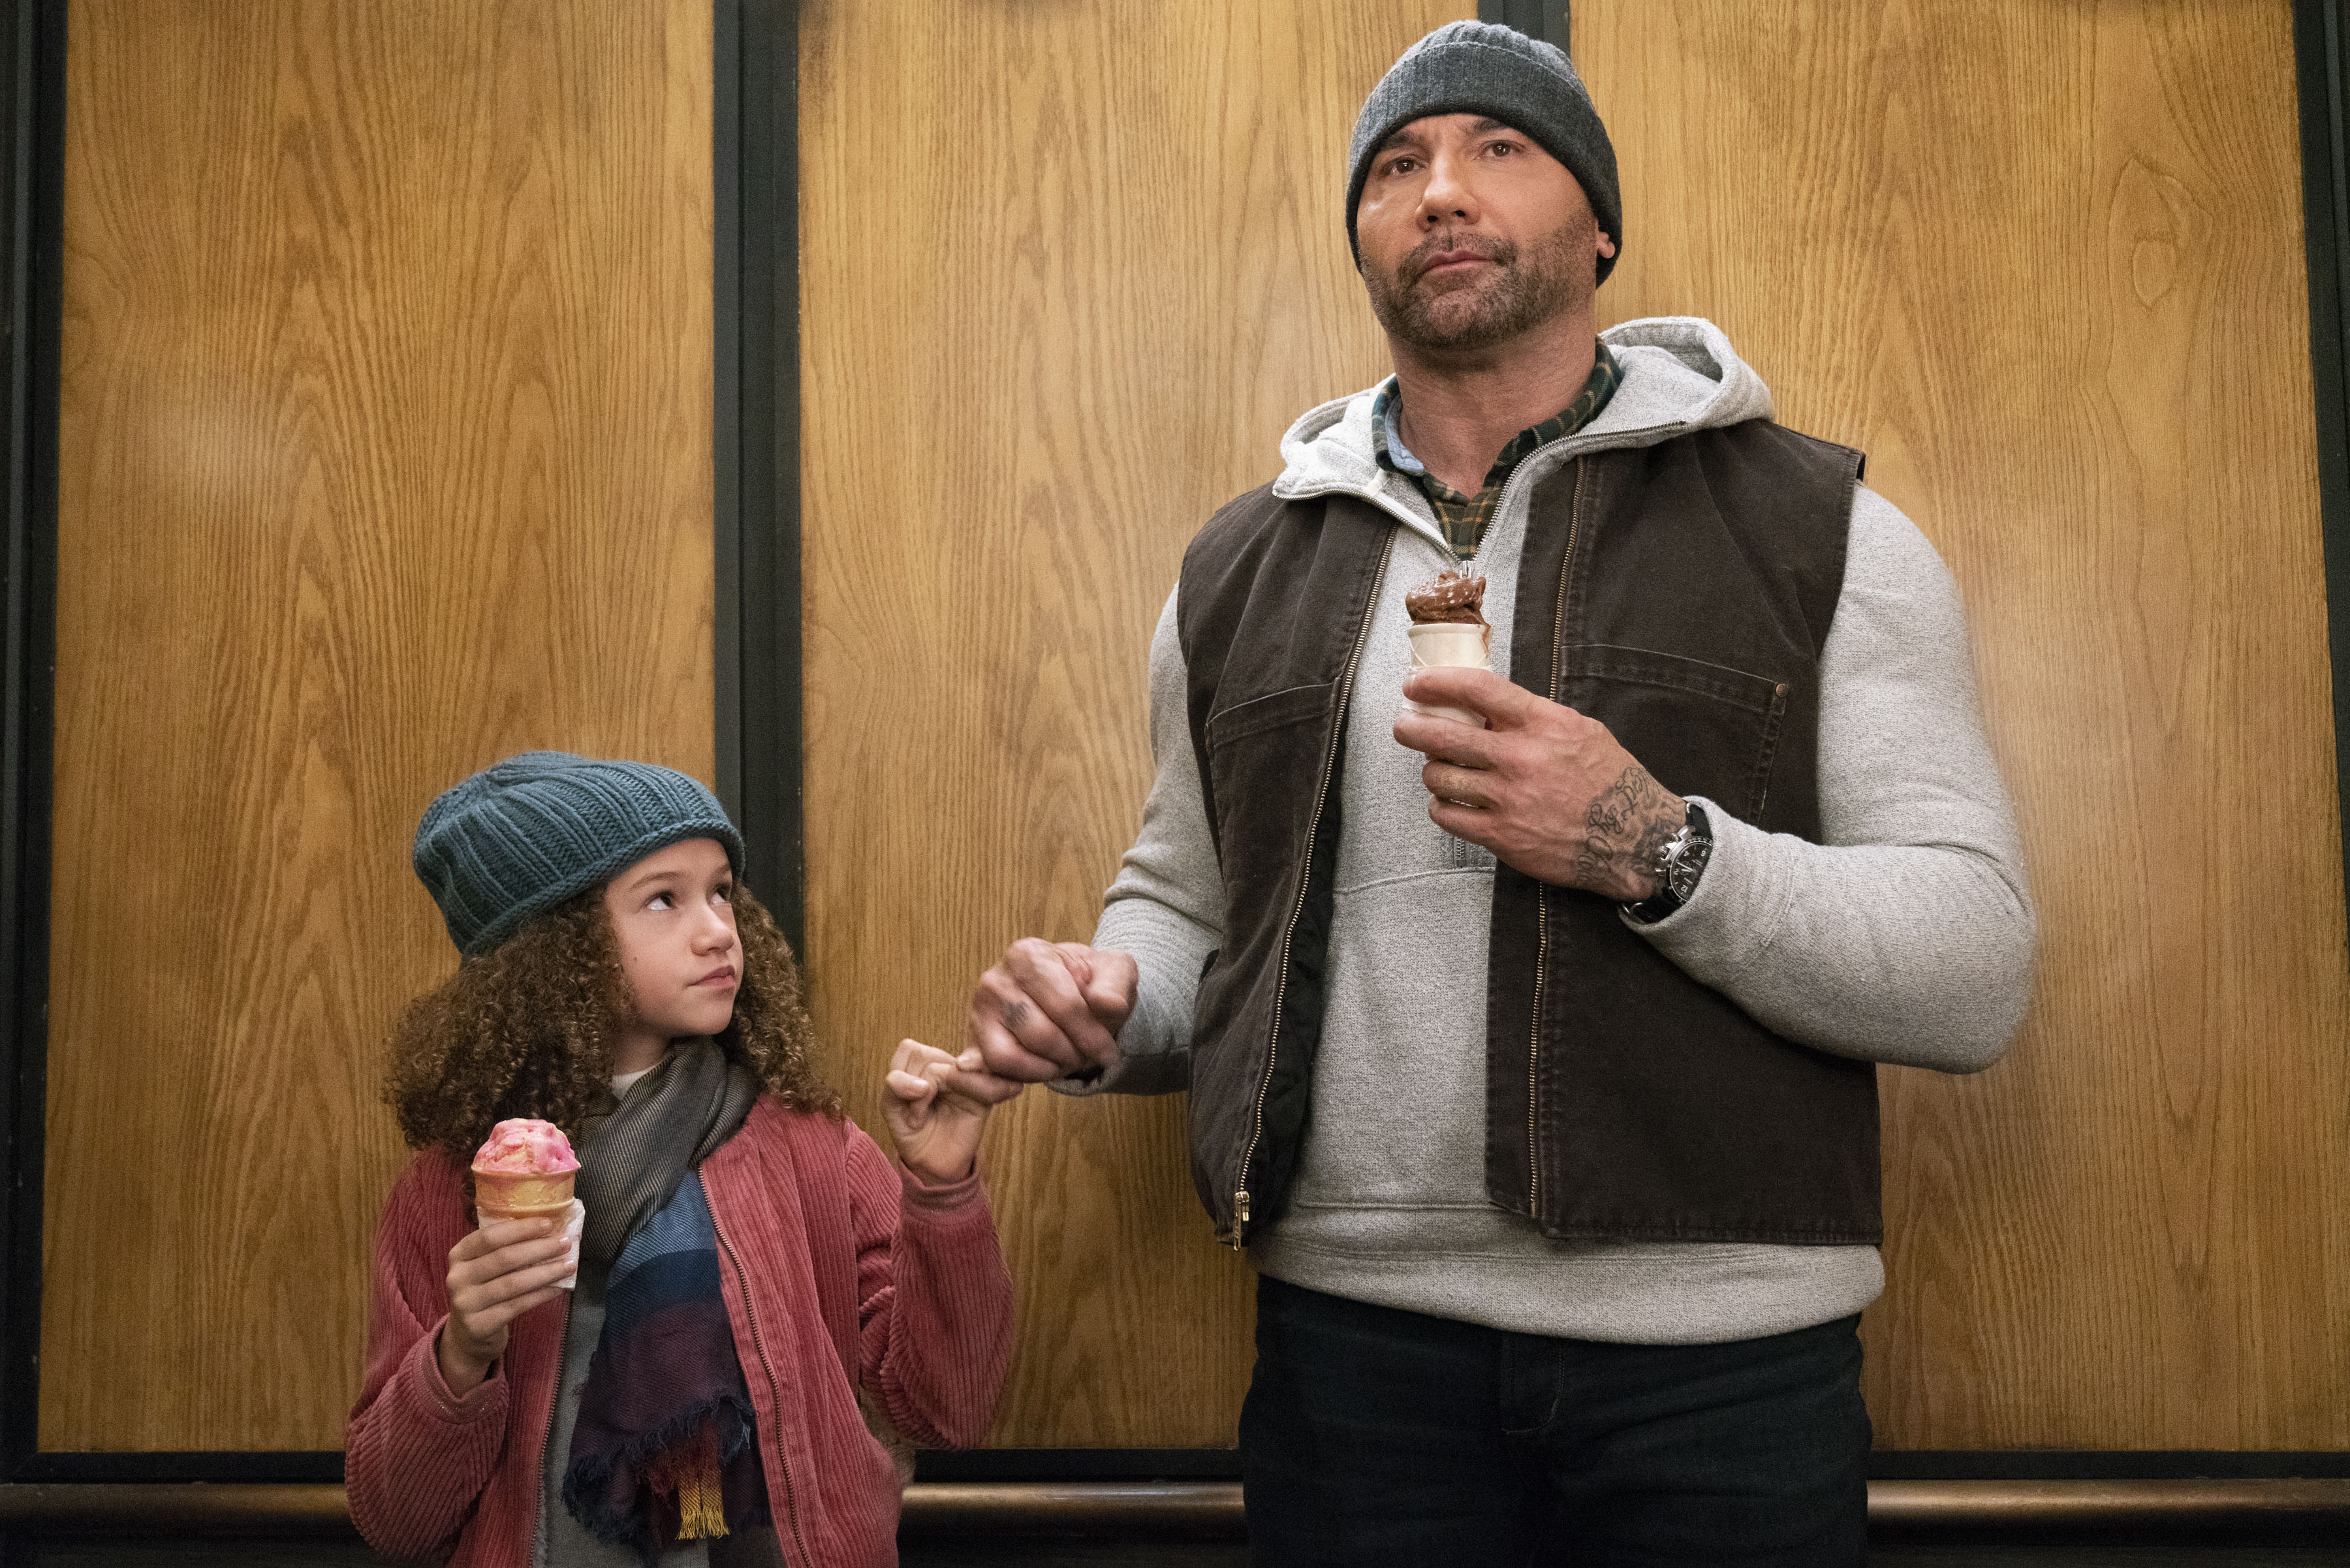 Dave Bautista Pitches a Drax and Mantis Team Up Movie Collider 3600x2402